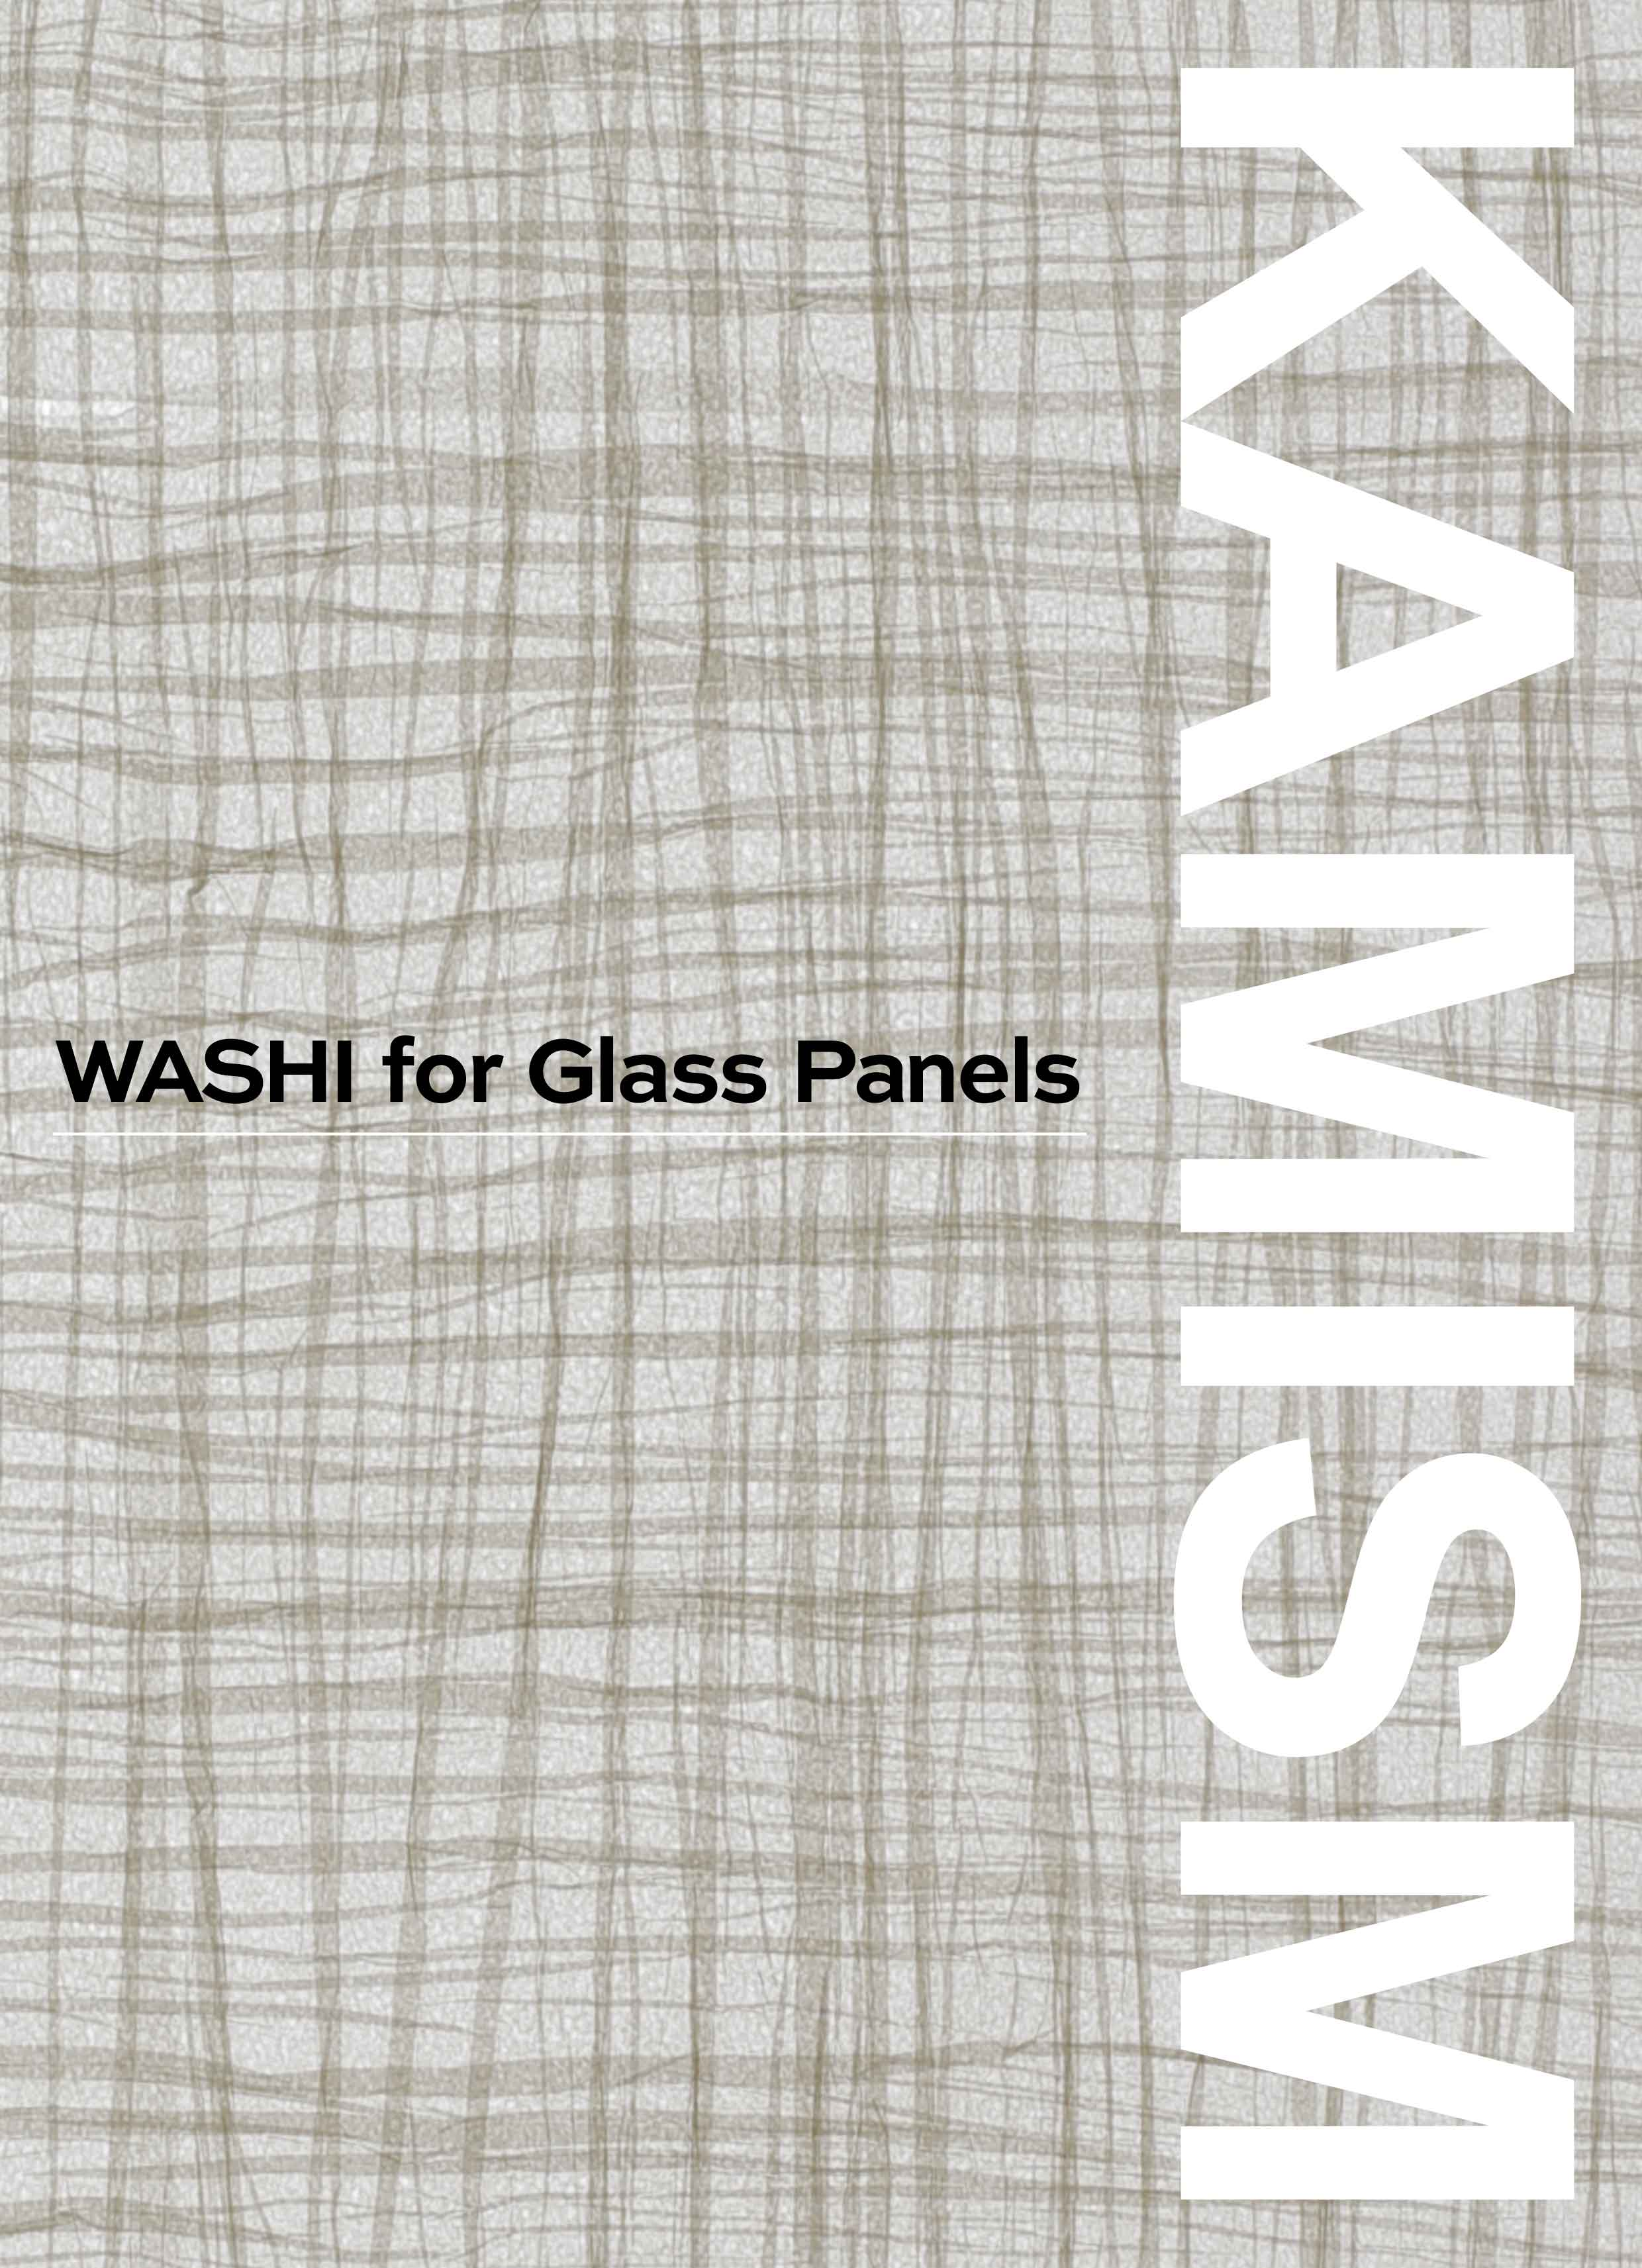 WASHI for Glass Panels